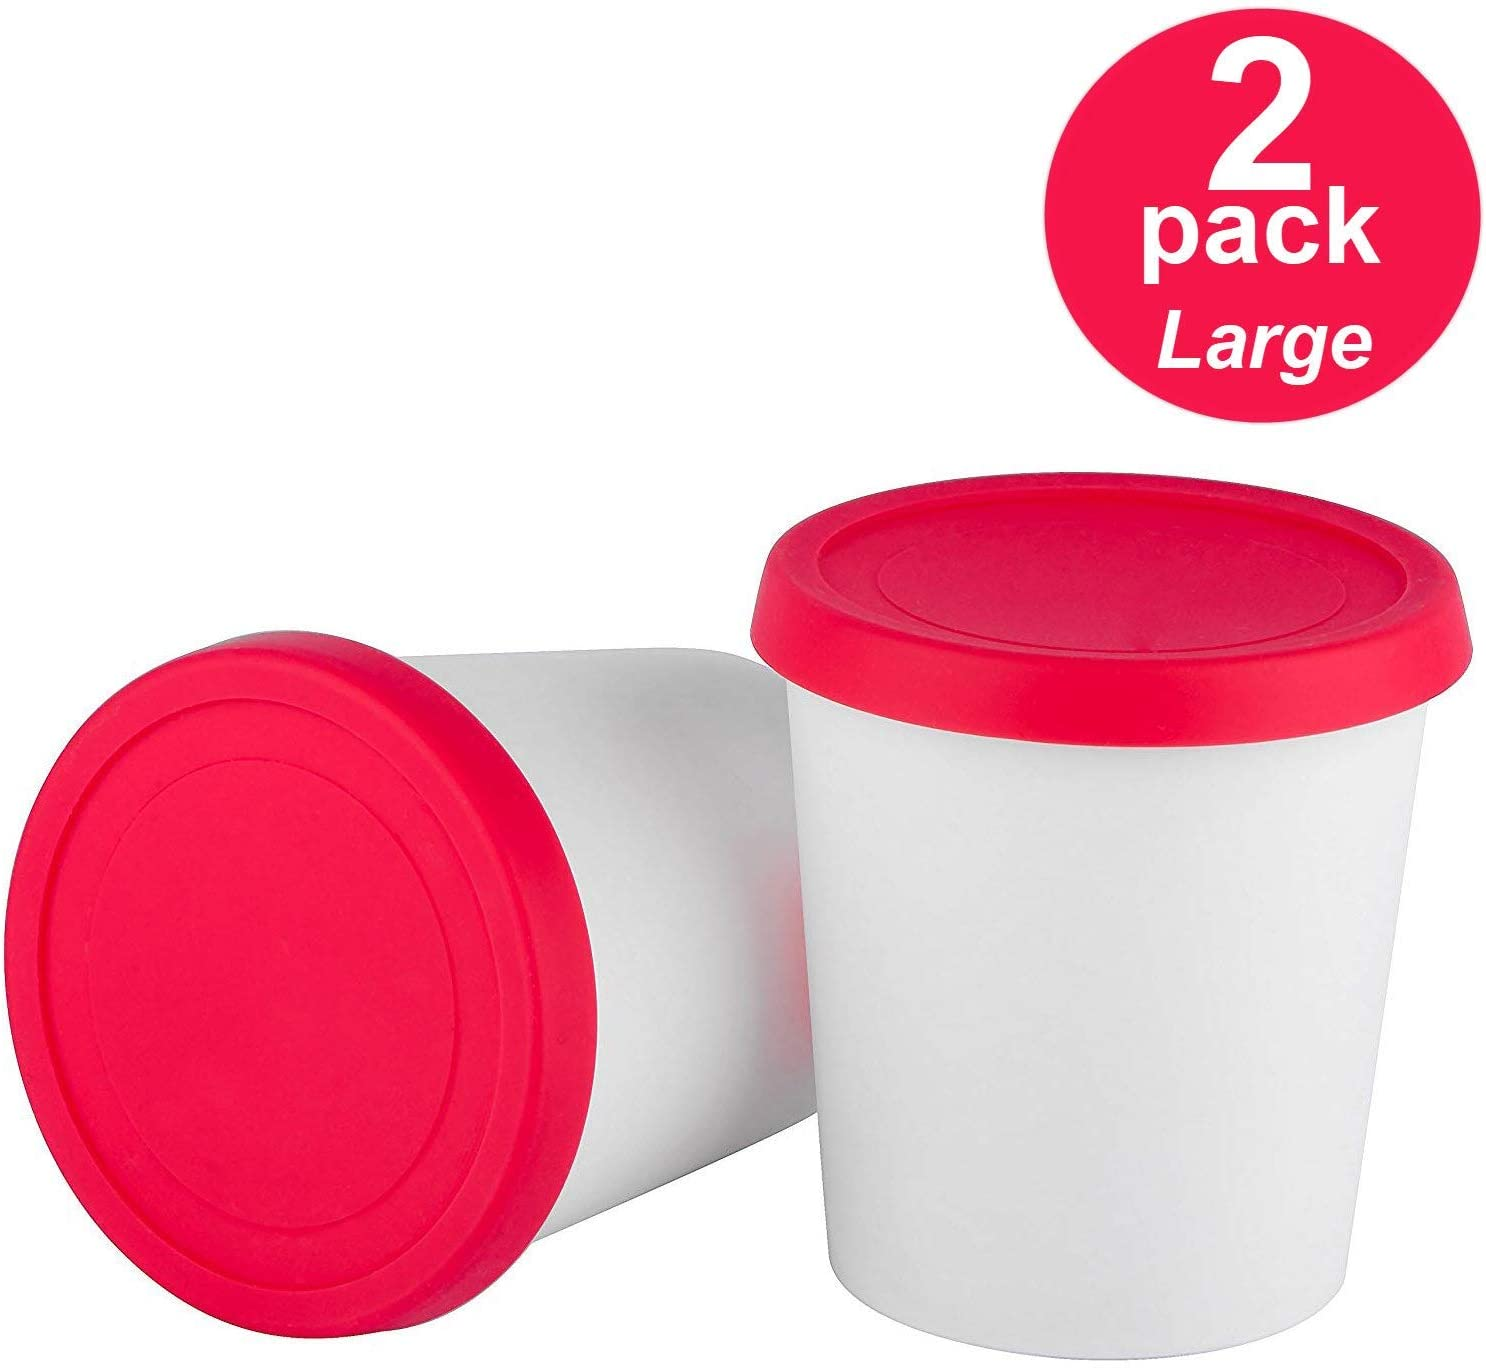 StarPack Home Freezer Ice Cream Storage Container, 2-Pack